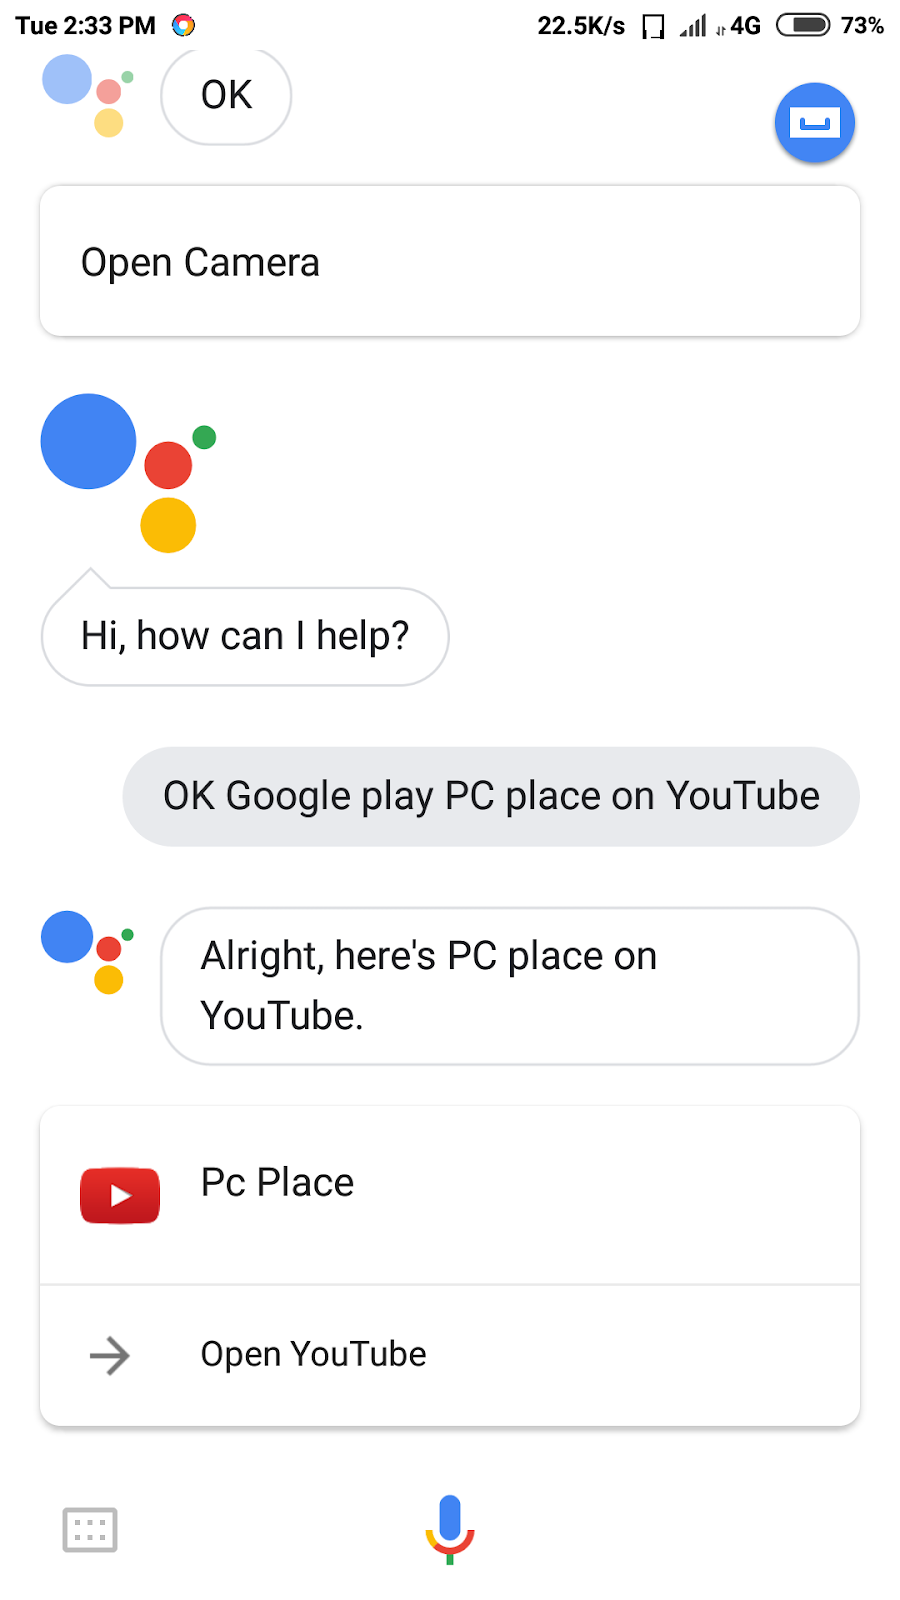 You can also play YouTube videos using Google Assistance